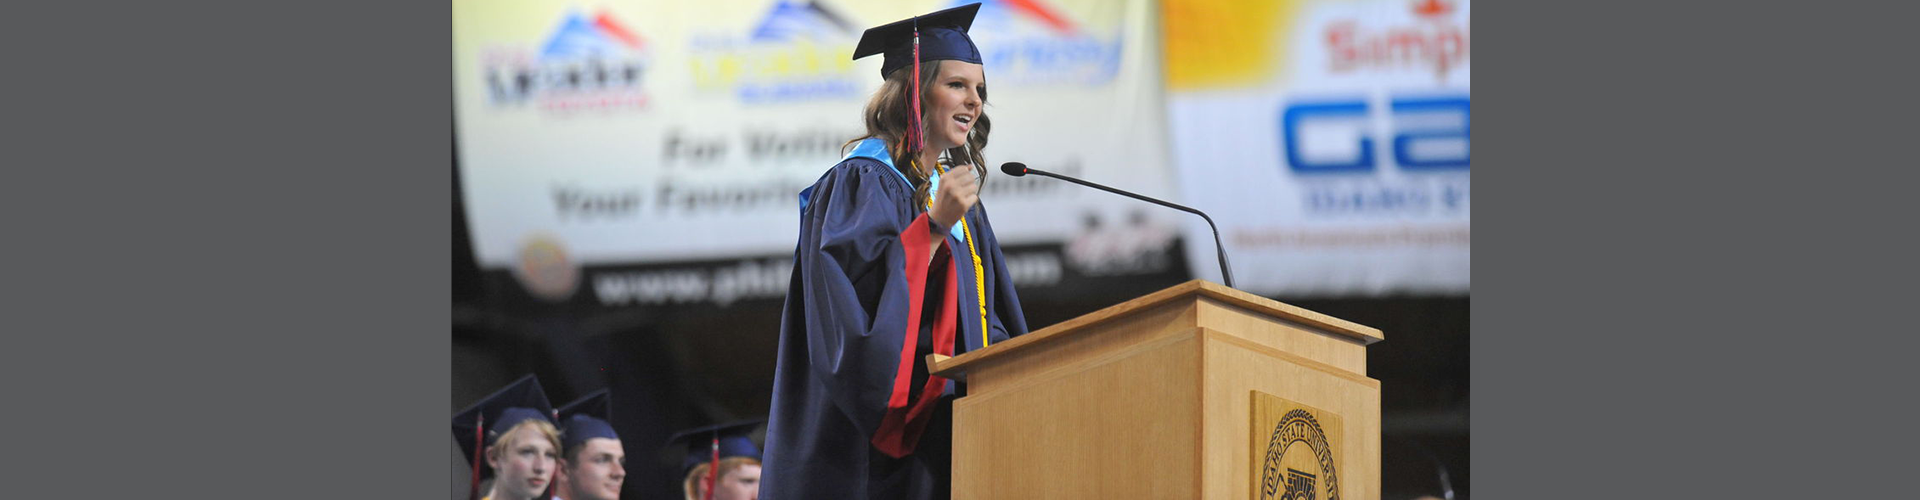 Pocatello High School graduation speaker 2015-2016